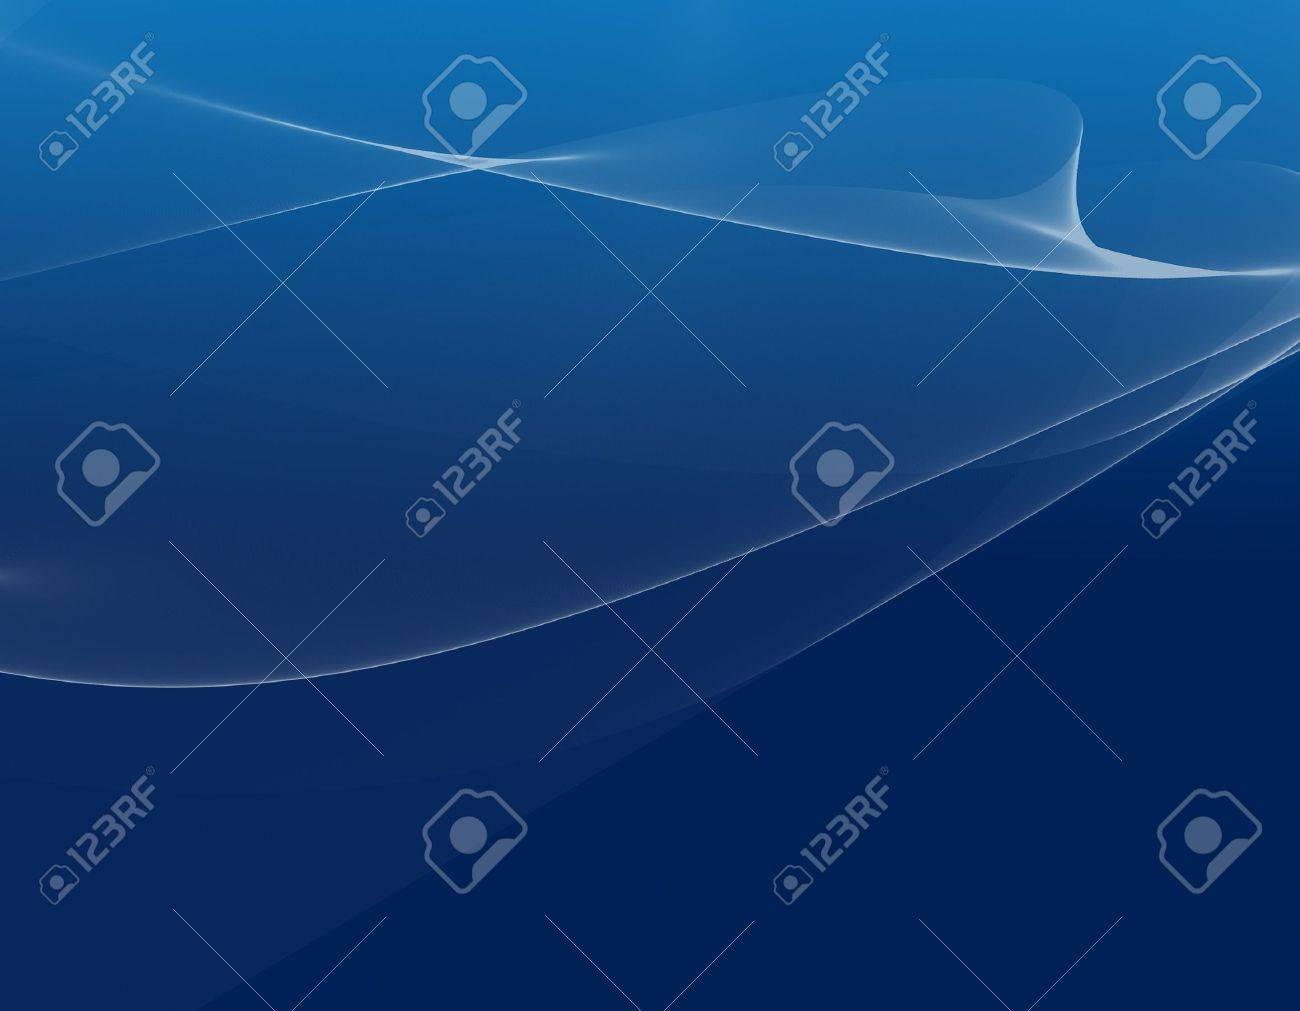 abstract computer graphic background art wallpaper 2d 3d Stock Photo - 705672